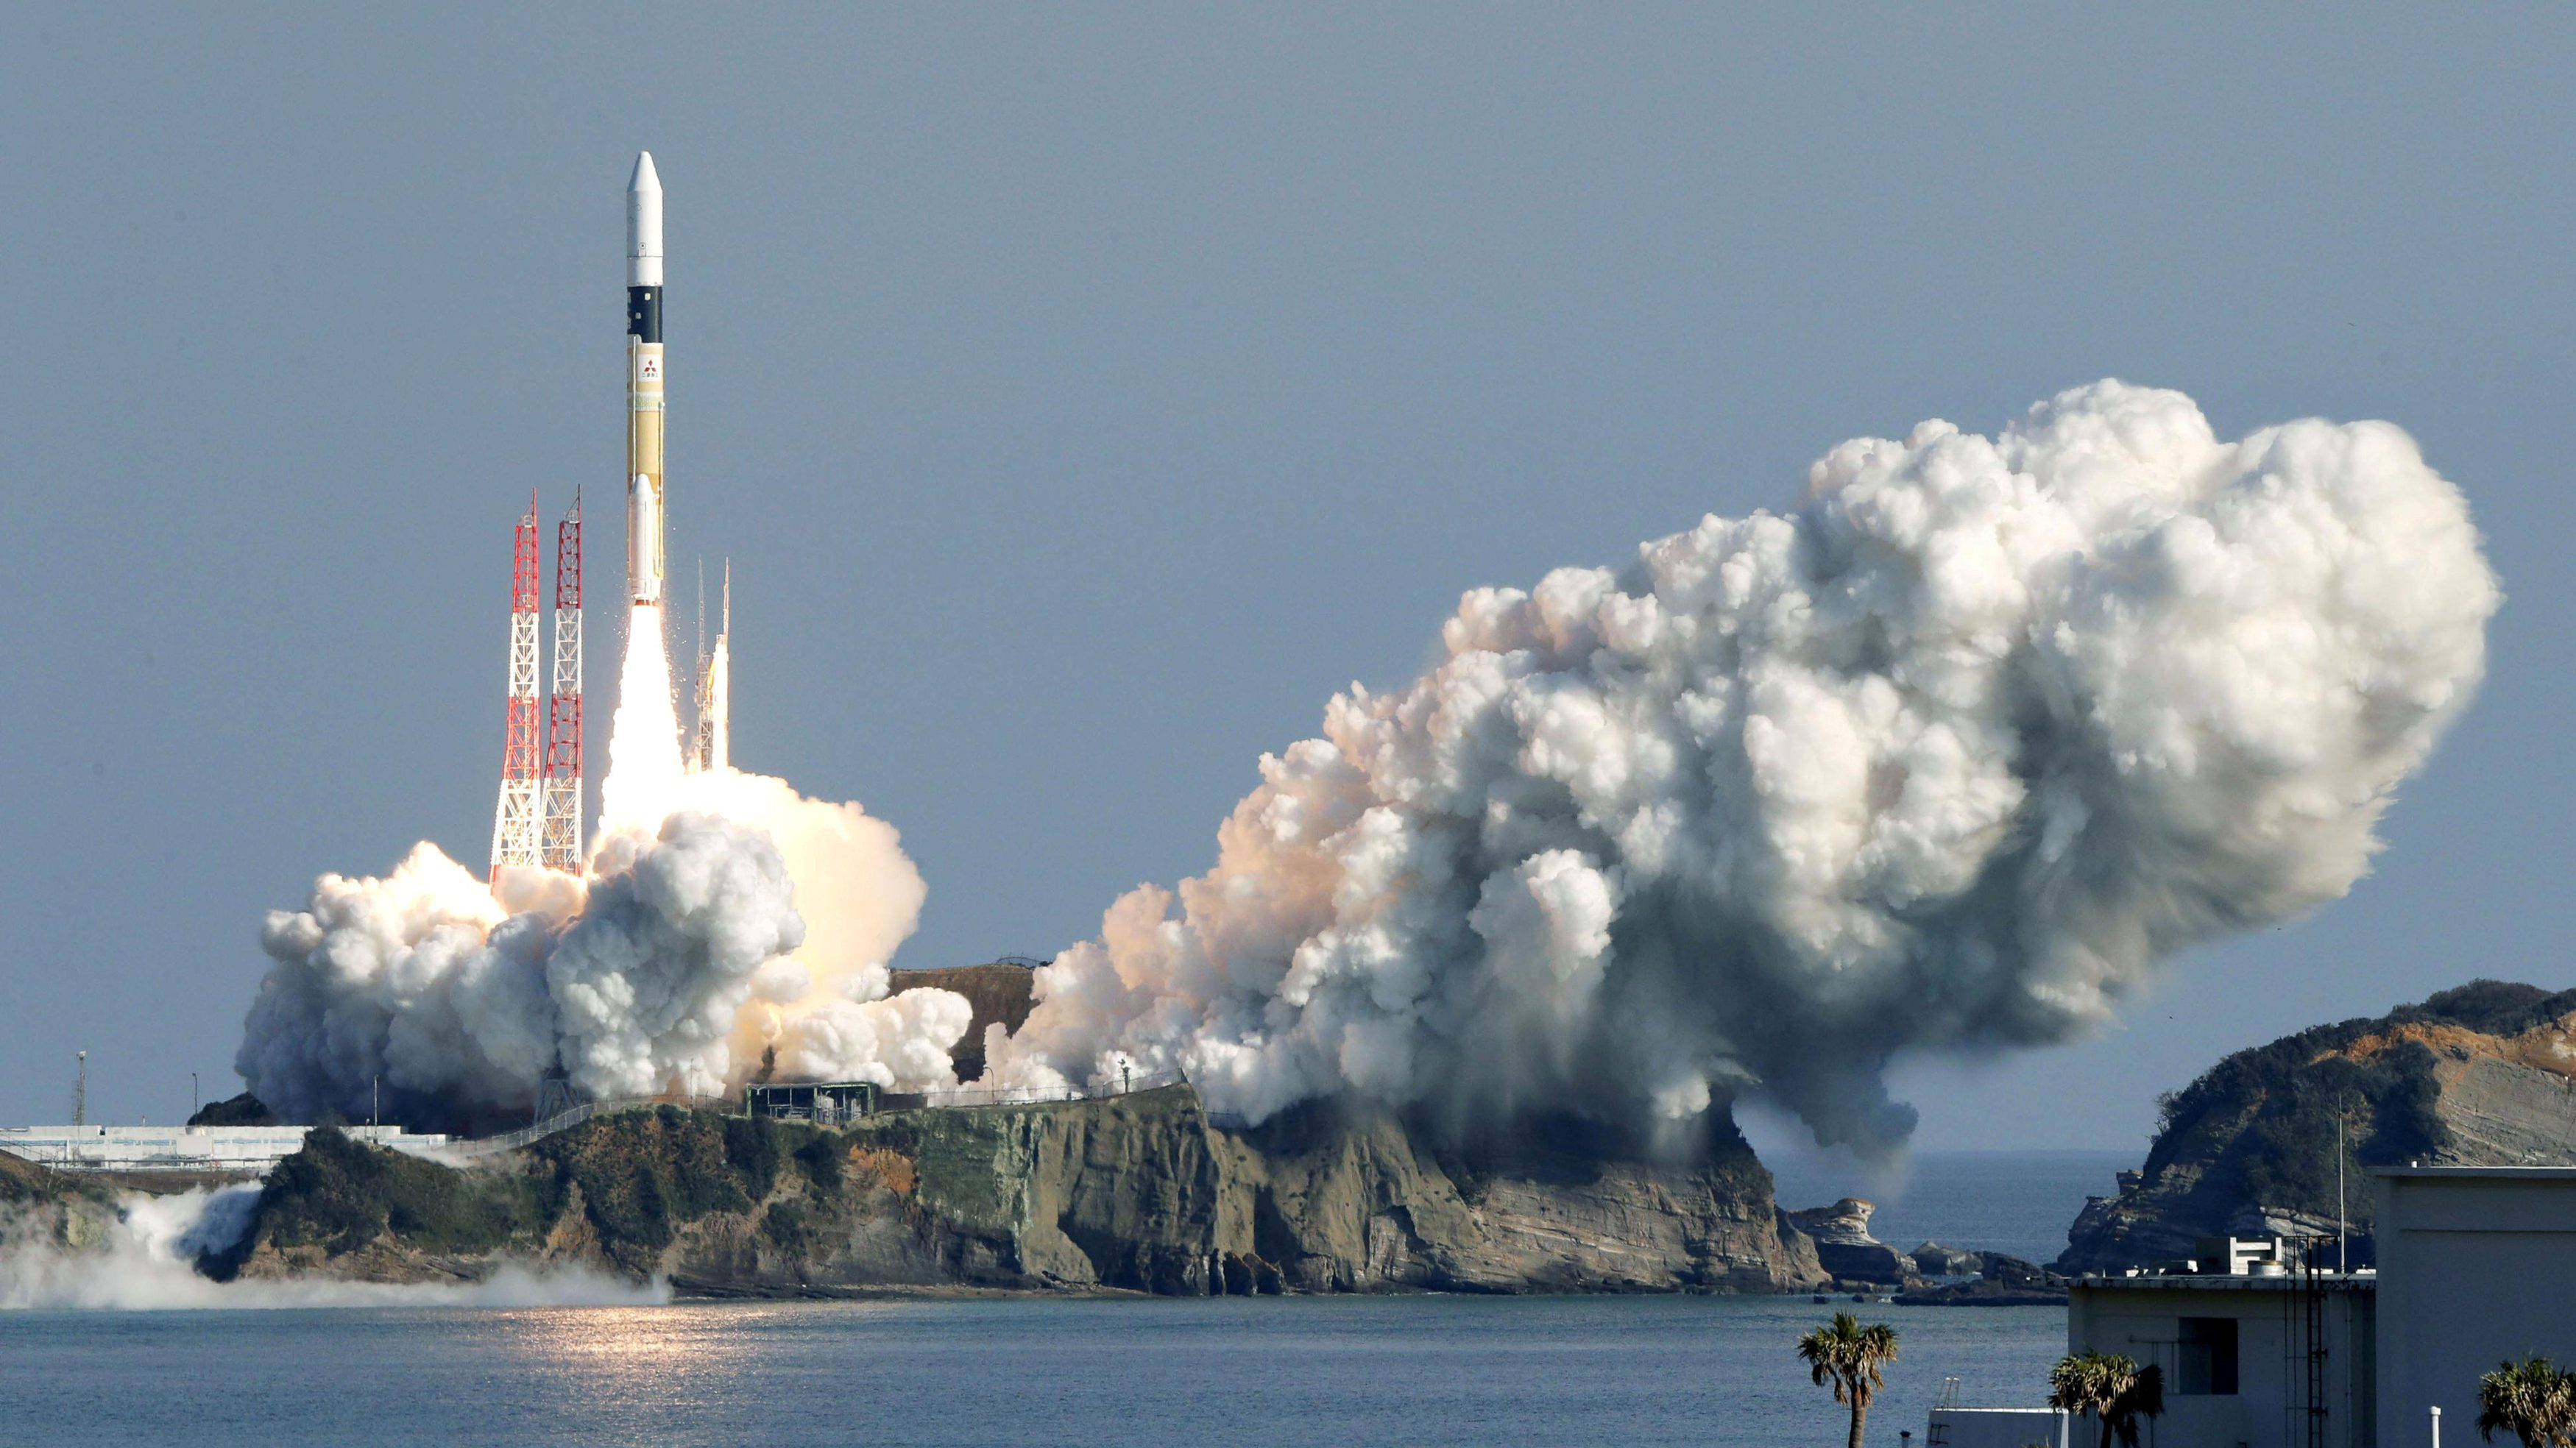 """A H-IIA rocket carrying the satellites GCOM-C, nicknamed """"Shikisai"""" and the Super Low Altitude Test Satellite (SLATS) nicknamed """"Tsubame"""", lifts off from the launching pad at Tanegashima Space Center on the southwestern island of Tanegashima, Japan, in this photo taken by Kyodo December 23, 2017."""